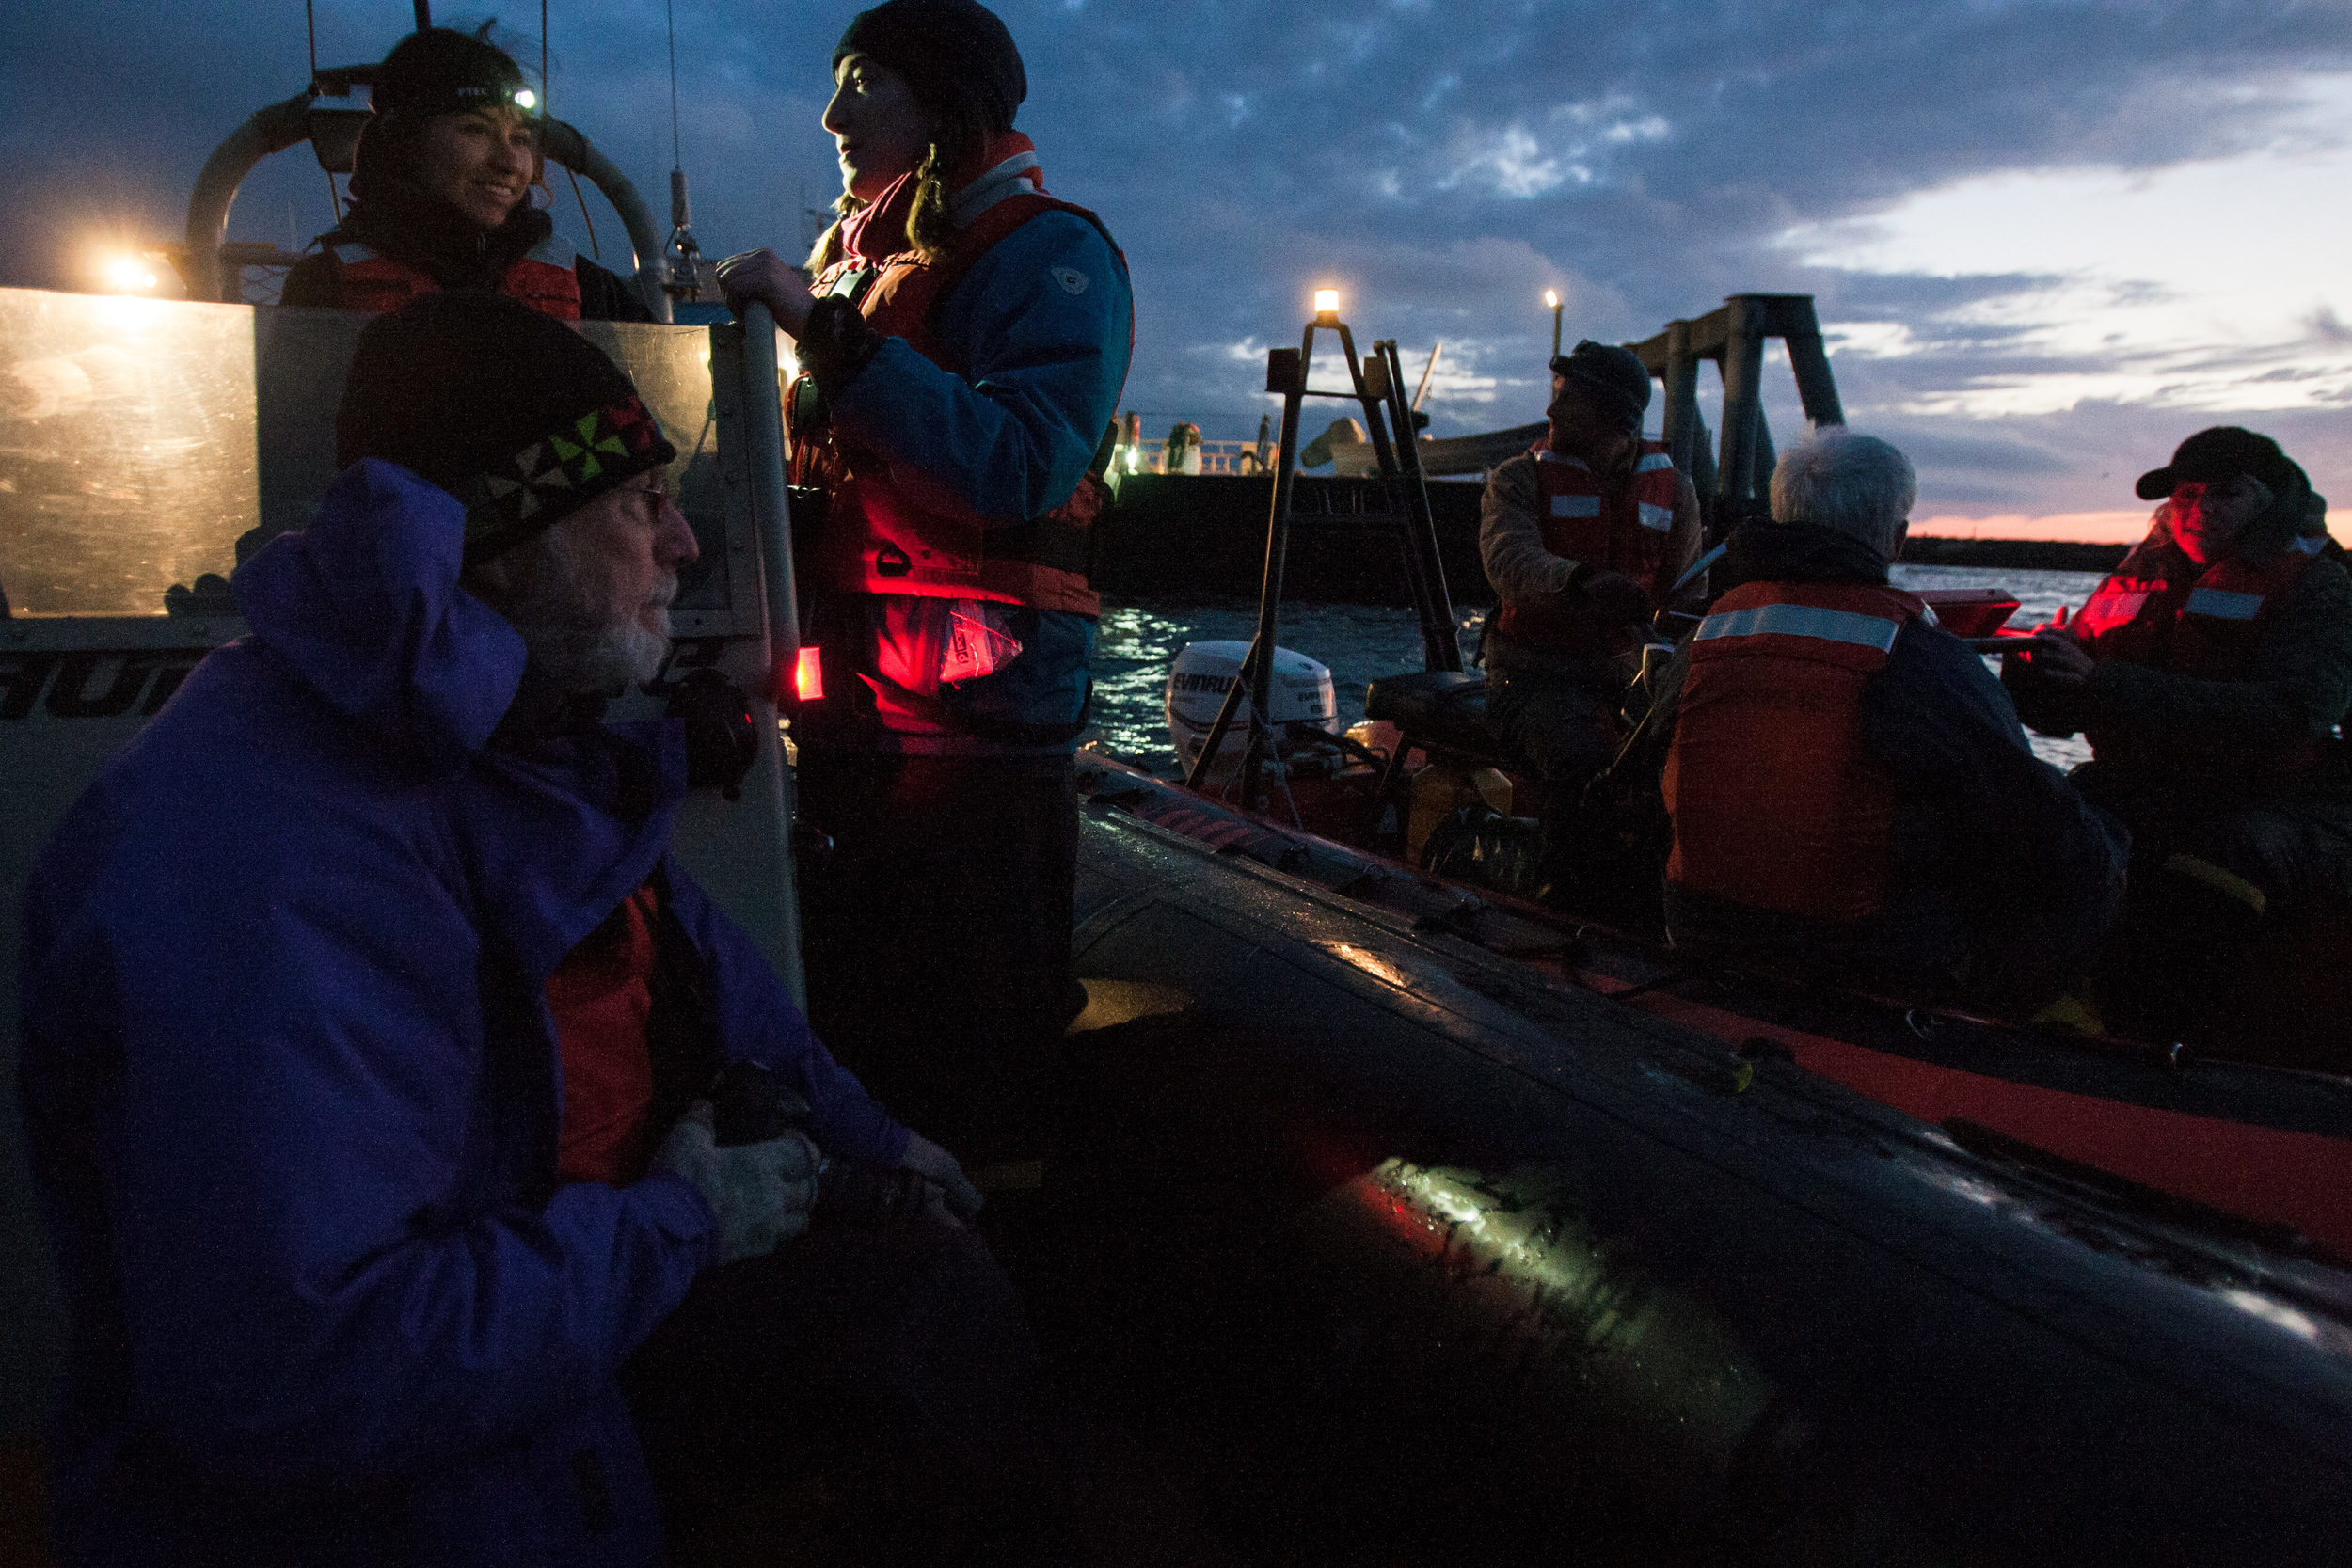 In the early morning light, Greenpeace activists and members of the media prepare to meet the Polar Pioneer as it arrived in Port Angeles, Washington on April 17, 2015.